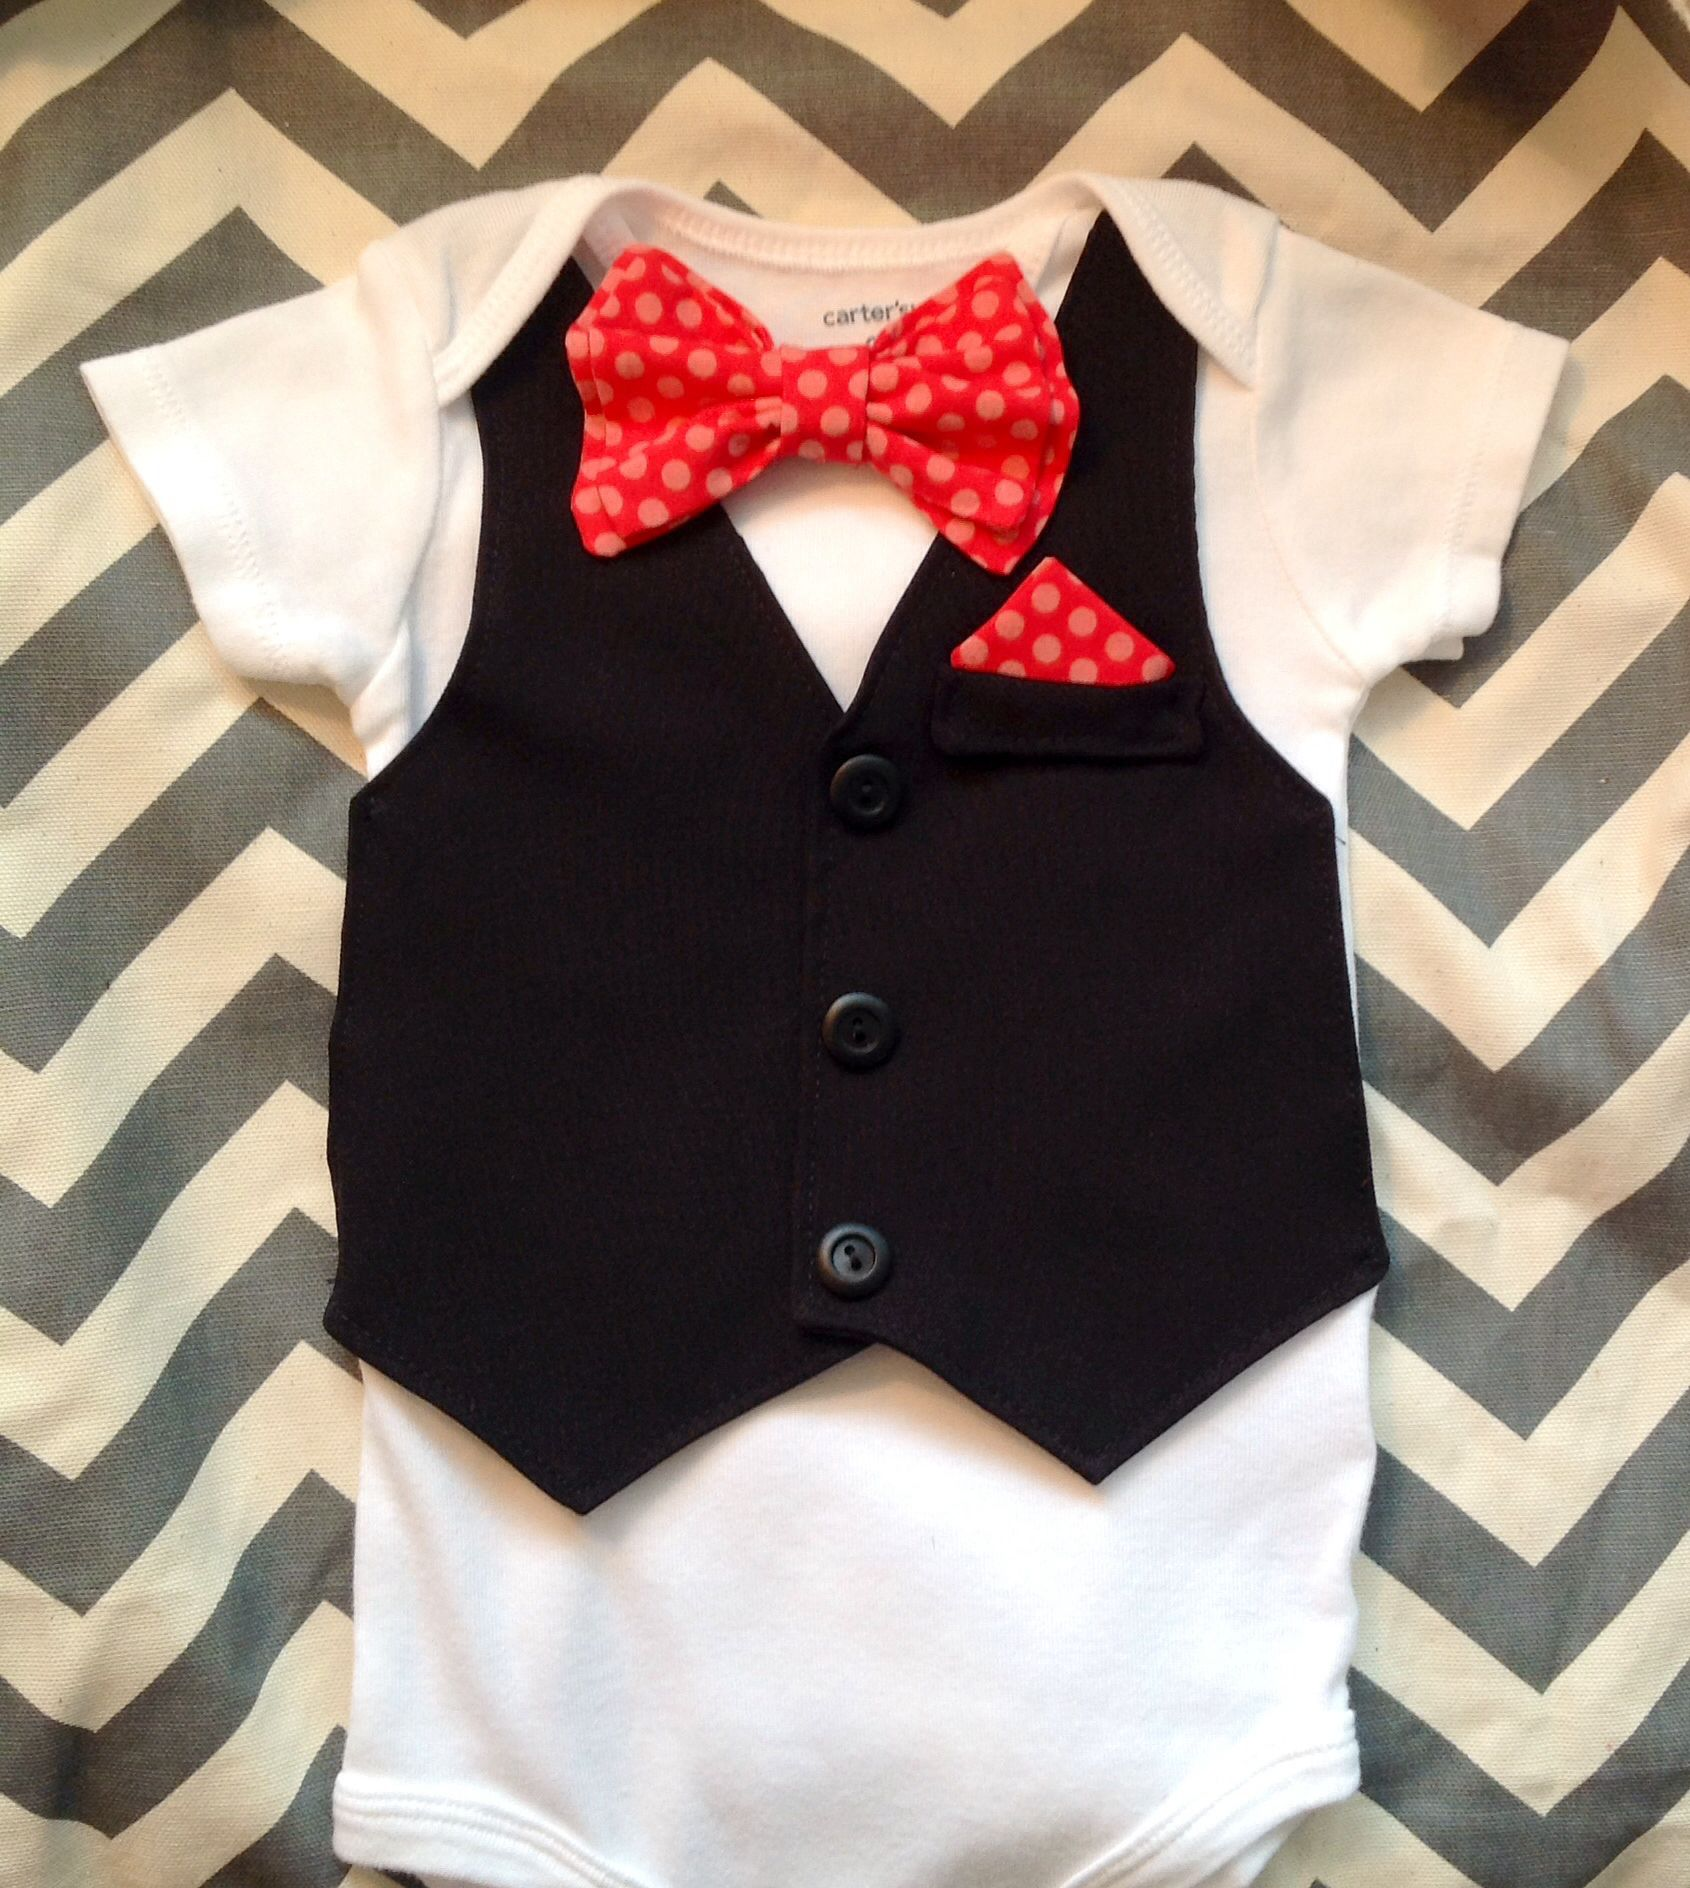 Coral baby vest with bow tie and pocket square onesie. This would be great for a wedding or convention. https://www.etsy.com/listing/190911331/comfortable-baby-boy-vestbow-tie-outfit?ref=shop_home_active_2